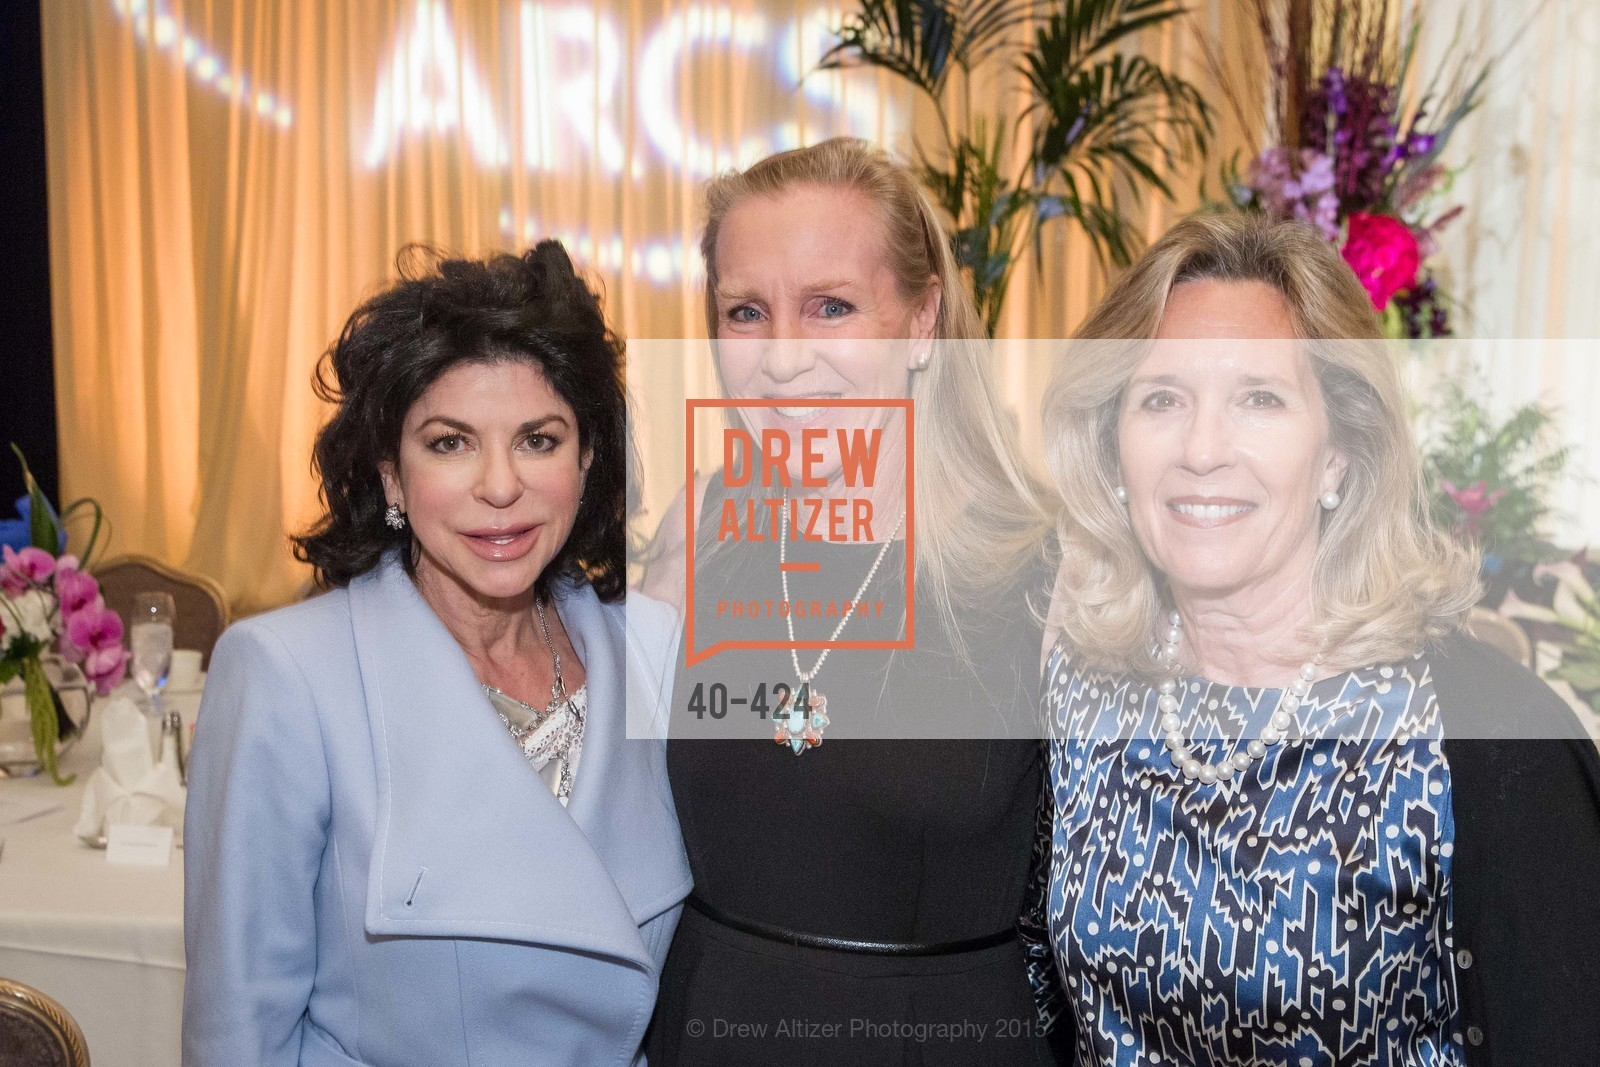 Deborah Mann, Cynthia Haueter, Susan Mooradian, 2015 ARCS Foundation Scholar Awards Luncheon, The Fairmont San Francisco. 950 Mason St, October 29th, 2015,Drew Altizer, Drew Altizer Photography, full-service agency, private events, San Francisco photographer, photographer california